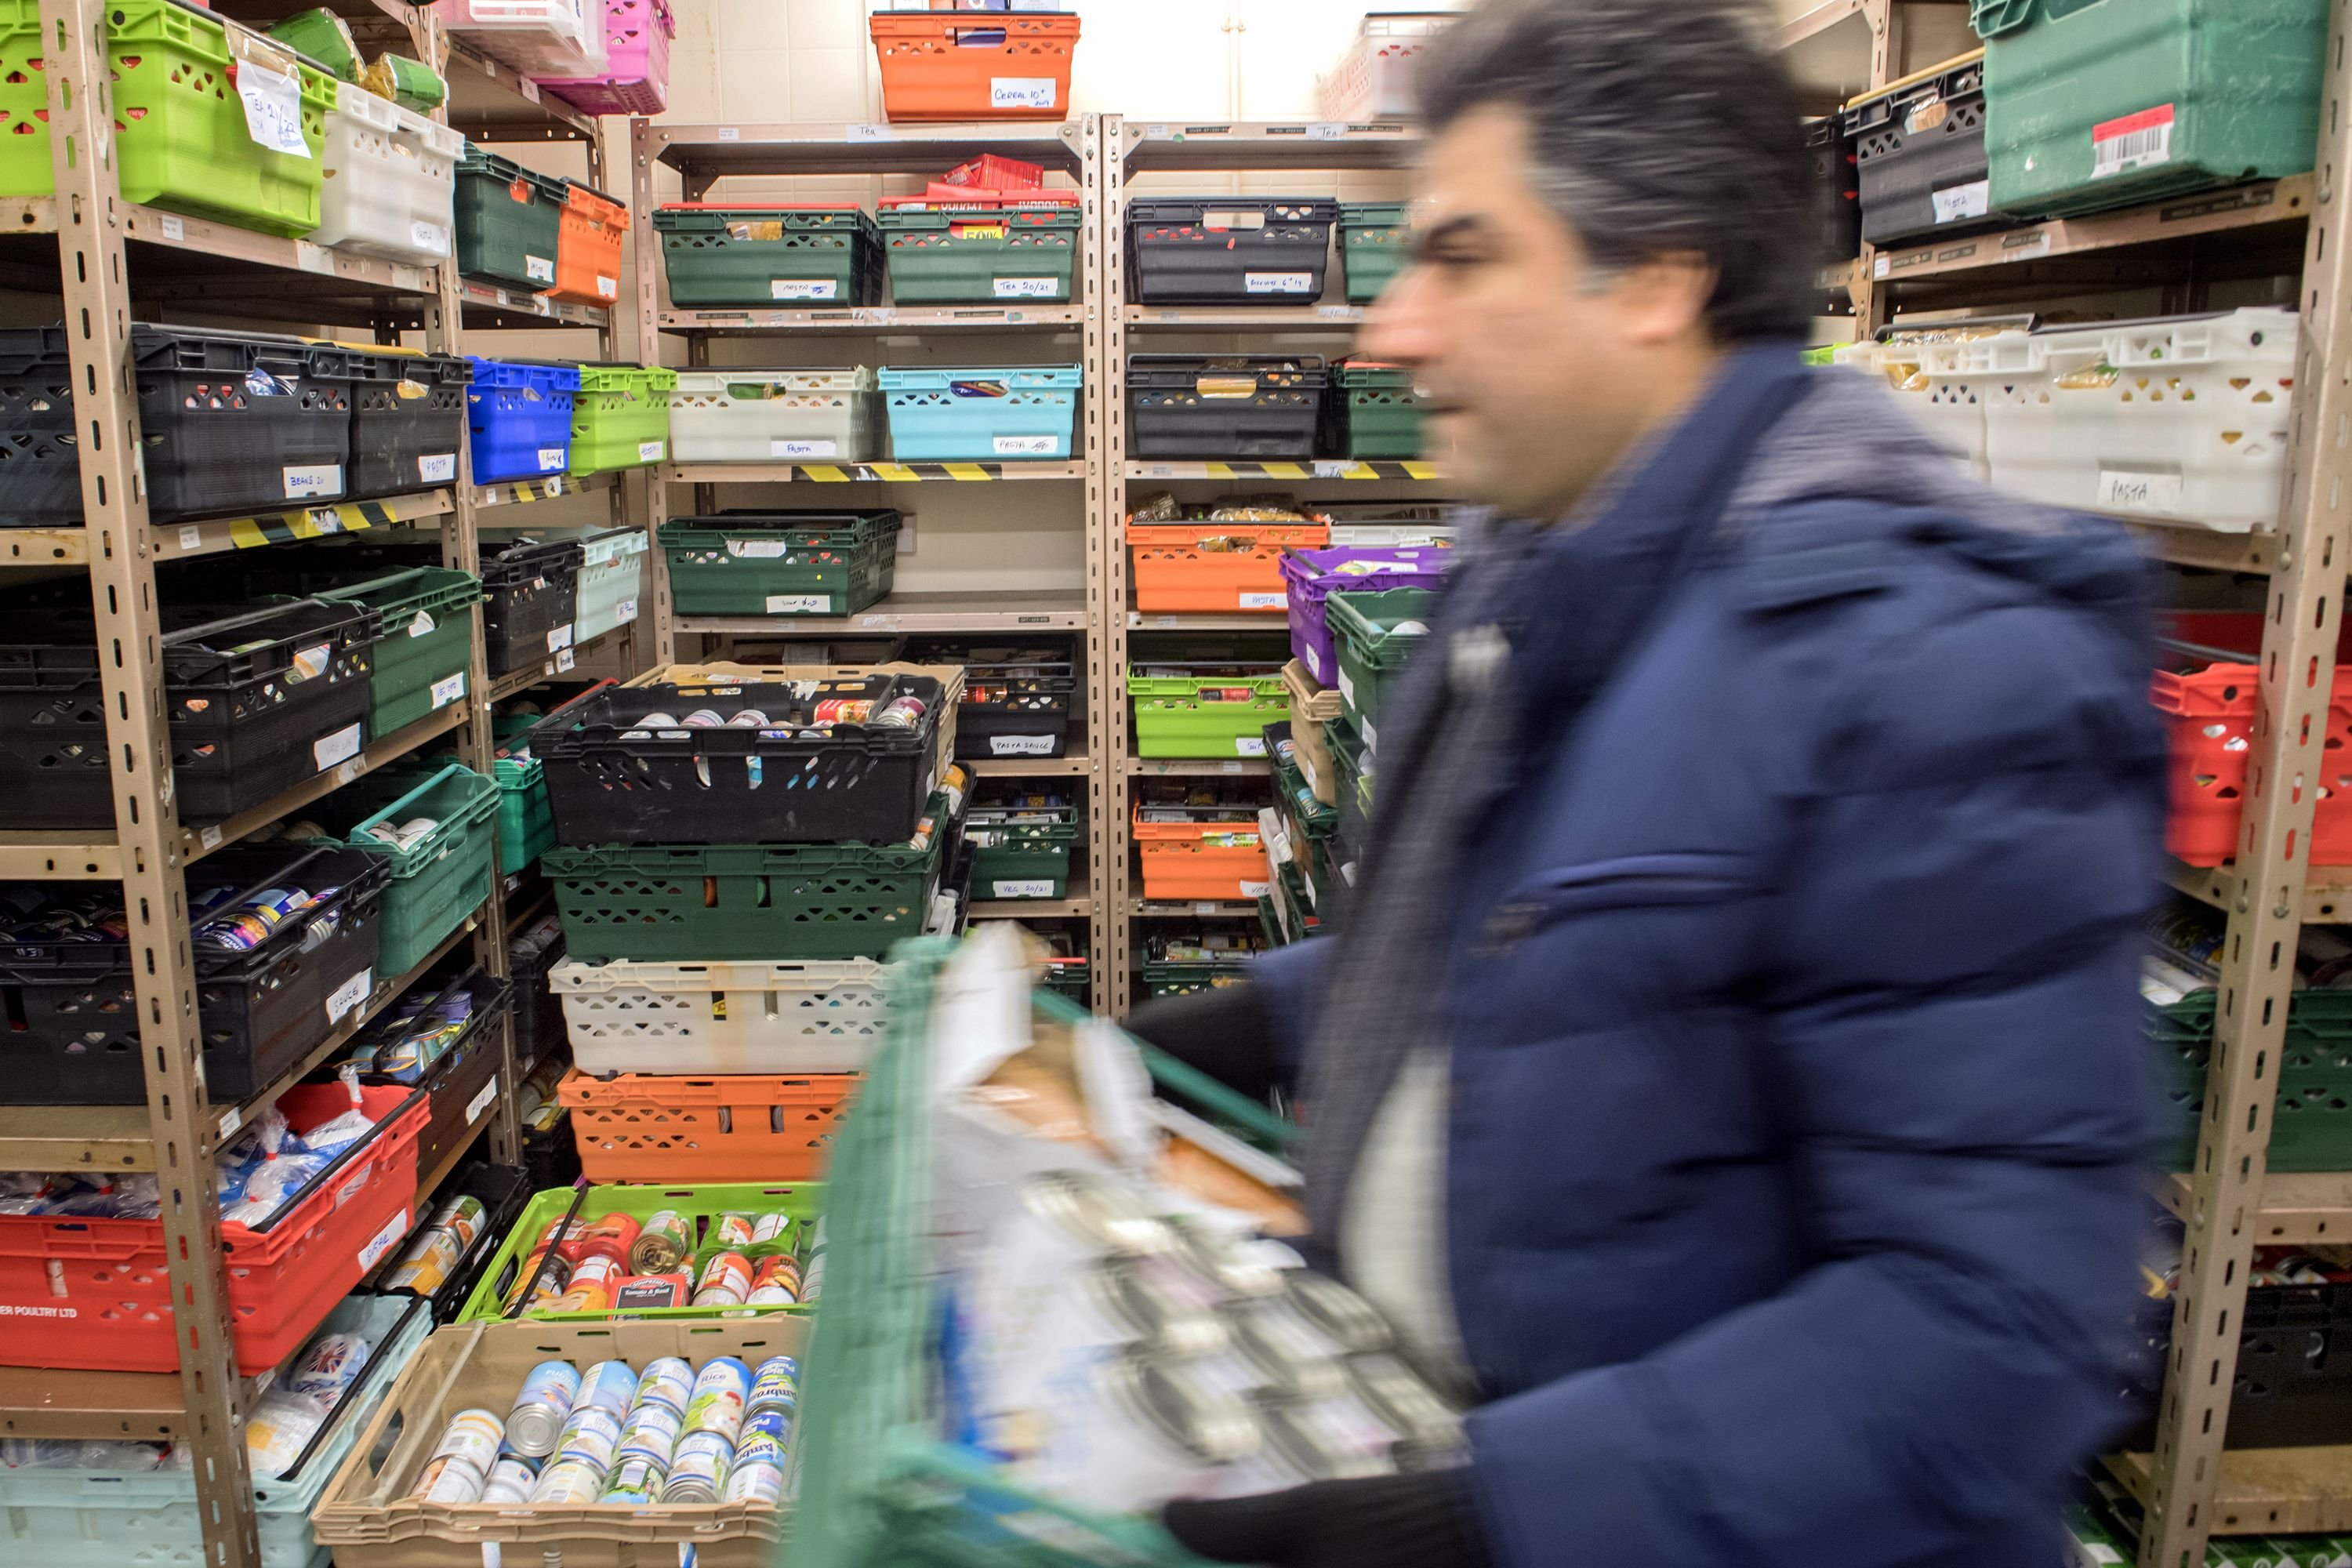 A U.K. food bank moves food donations for distribution